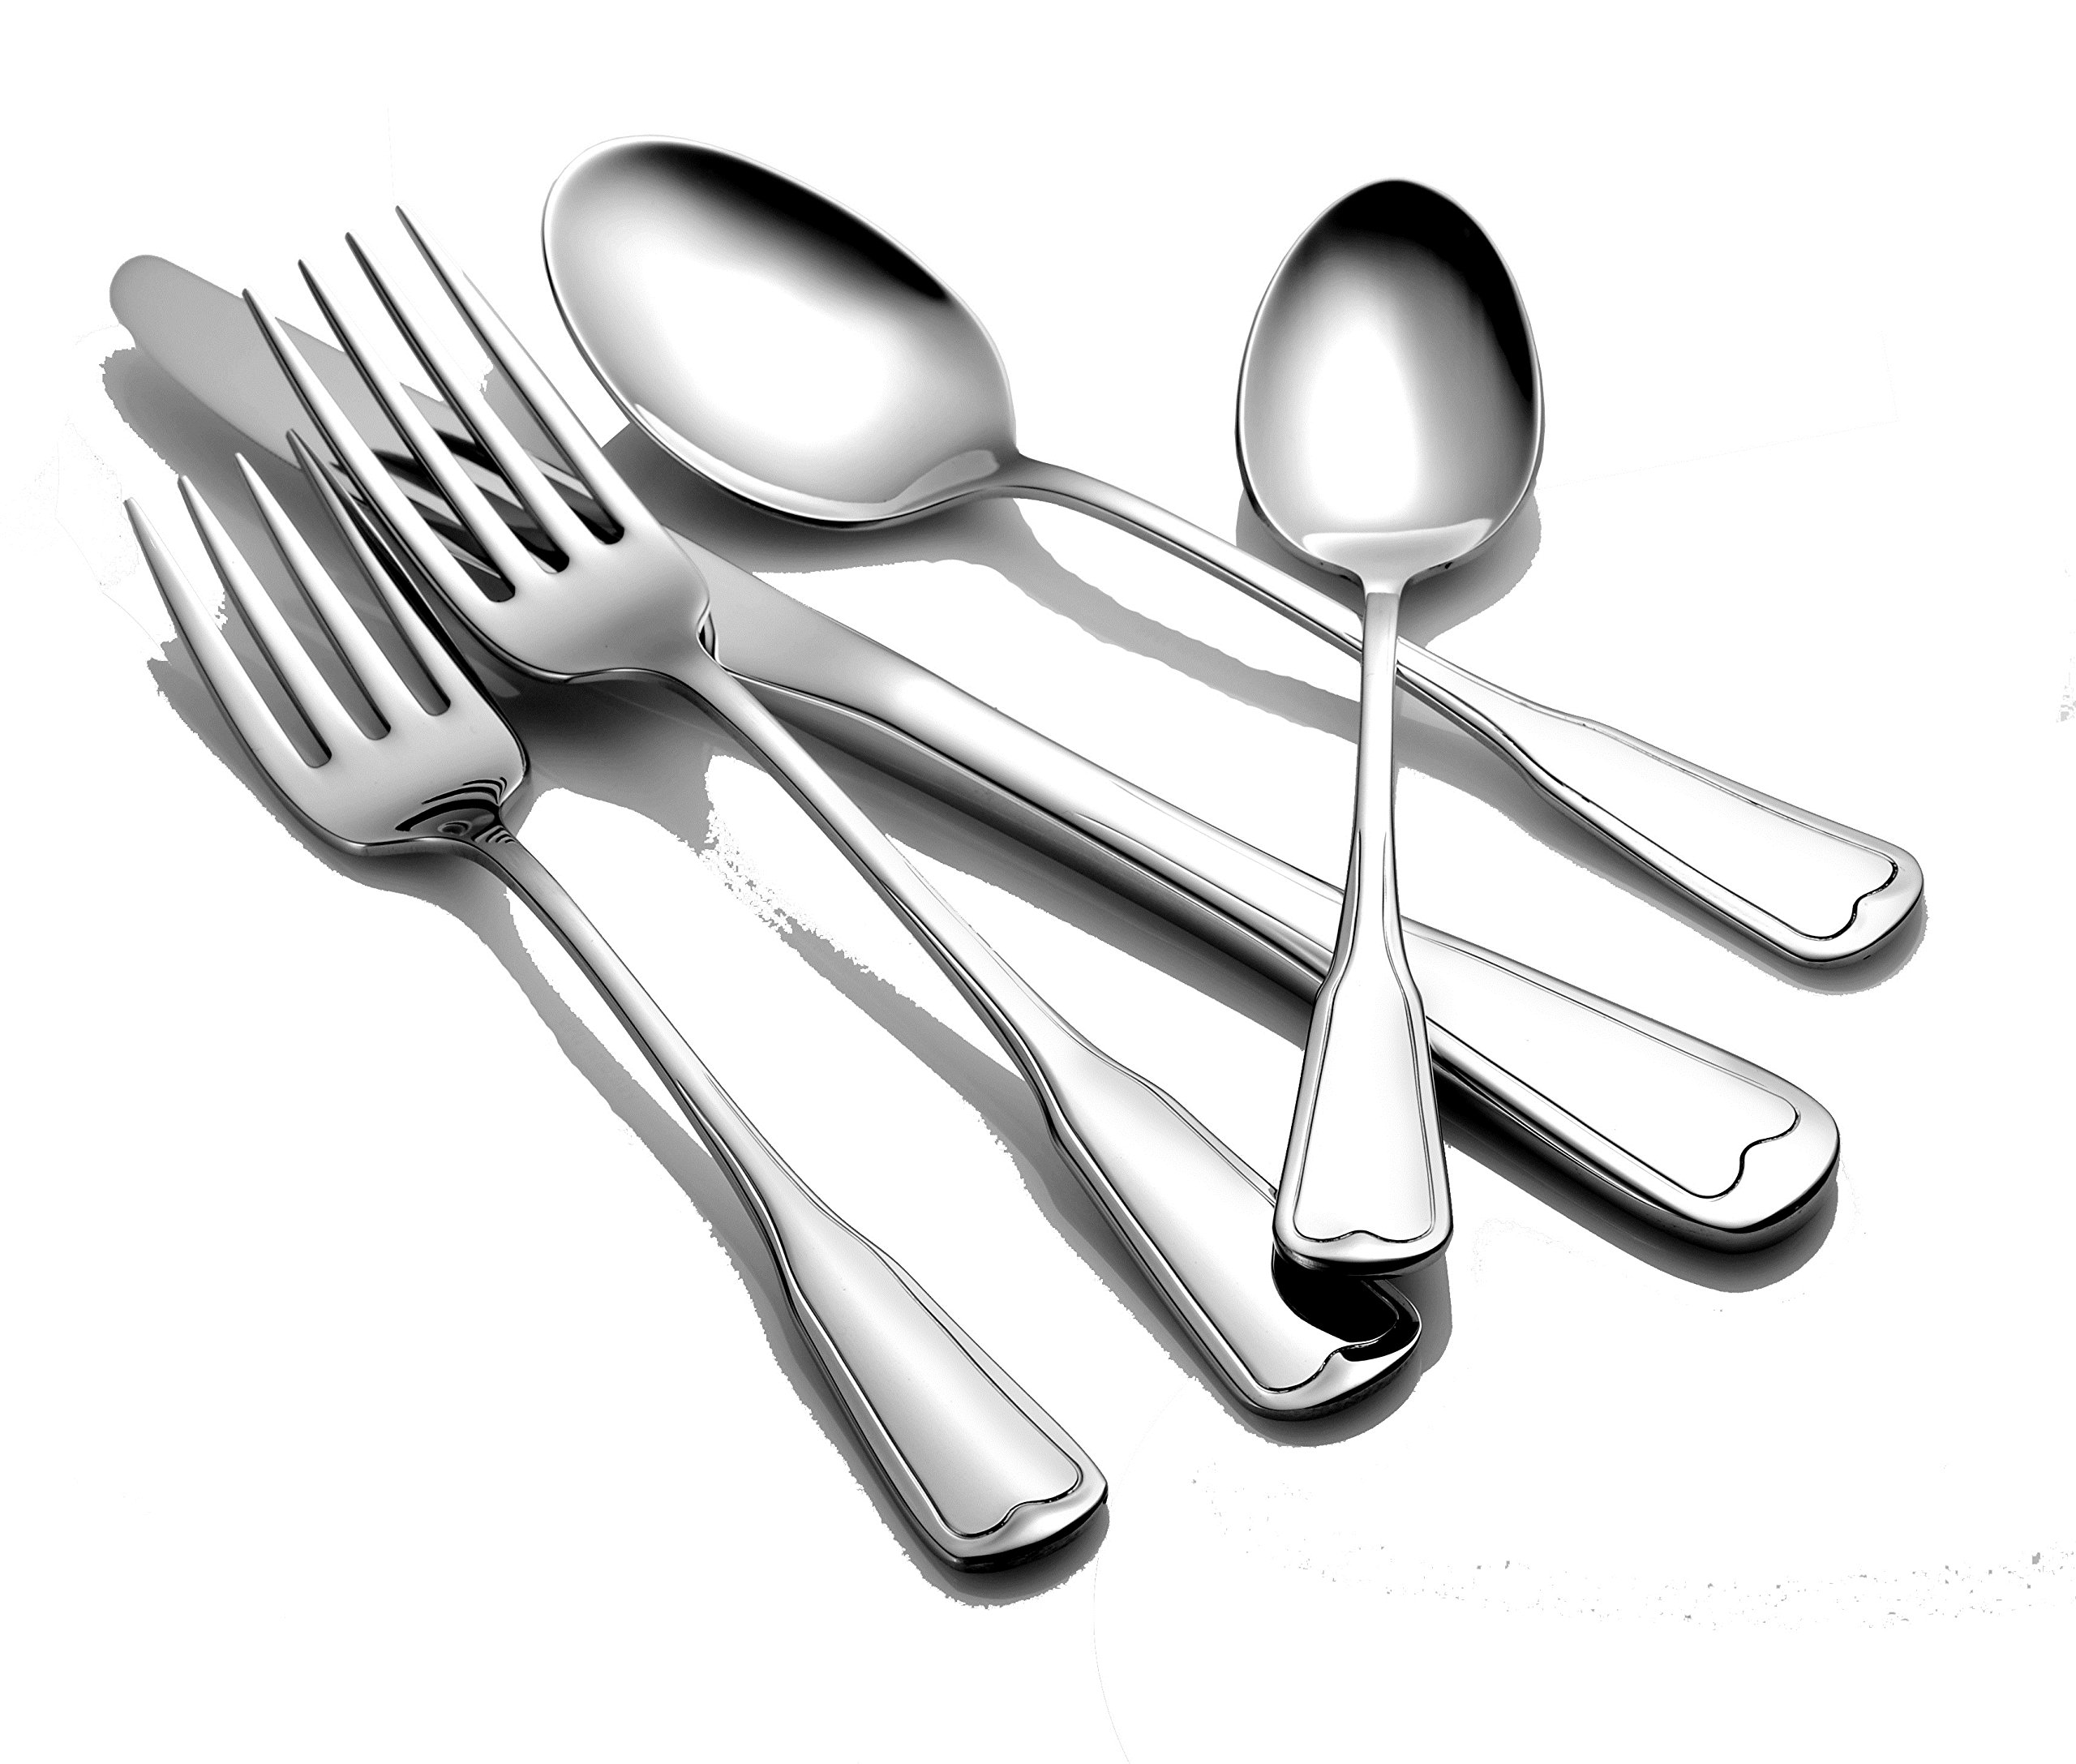 Liberty Tabletop Richmond 20 Piece Flatware Set service for 4 stainless steel 18/10 Made in USA by Liberty Tabletop (Image #3)